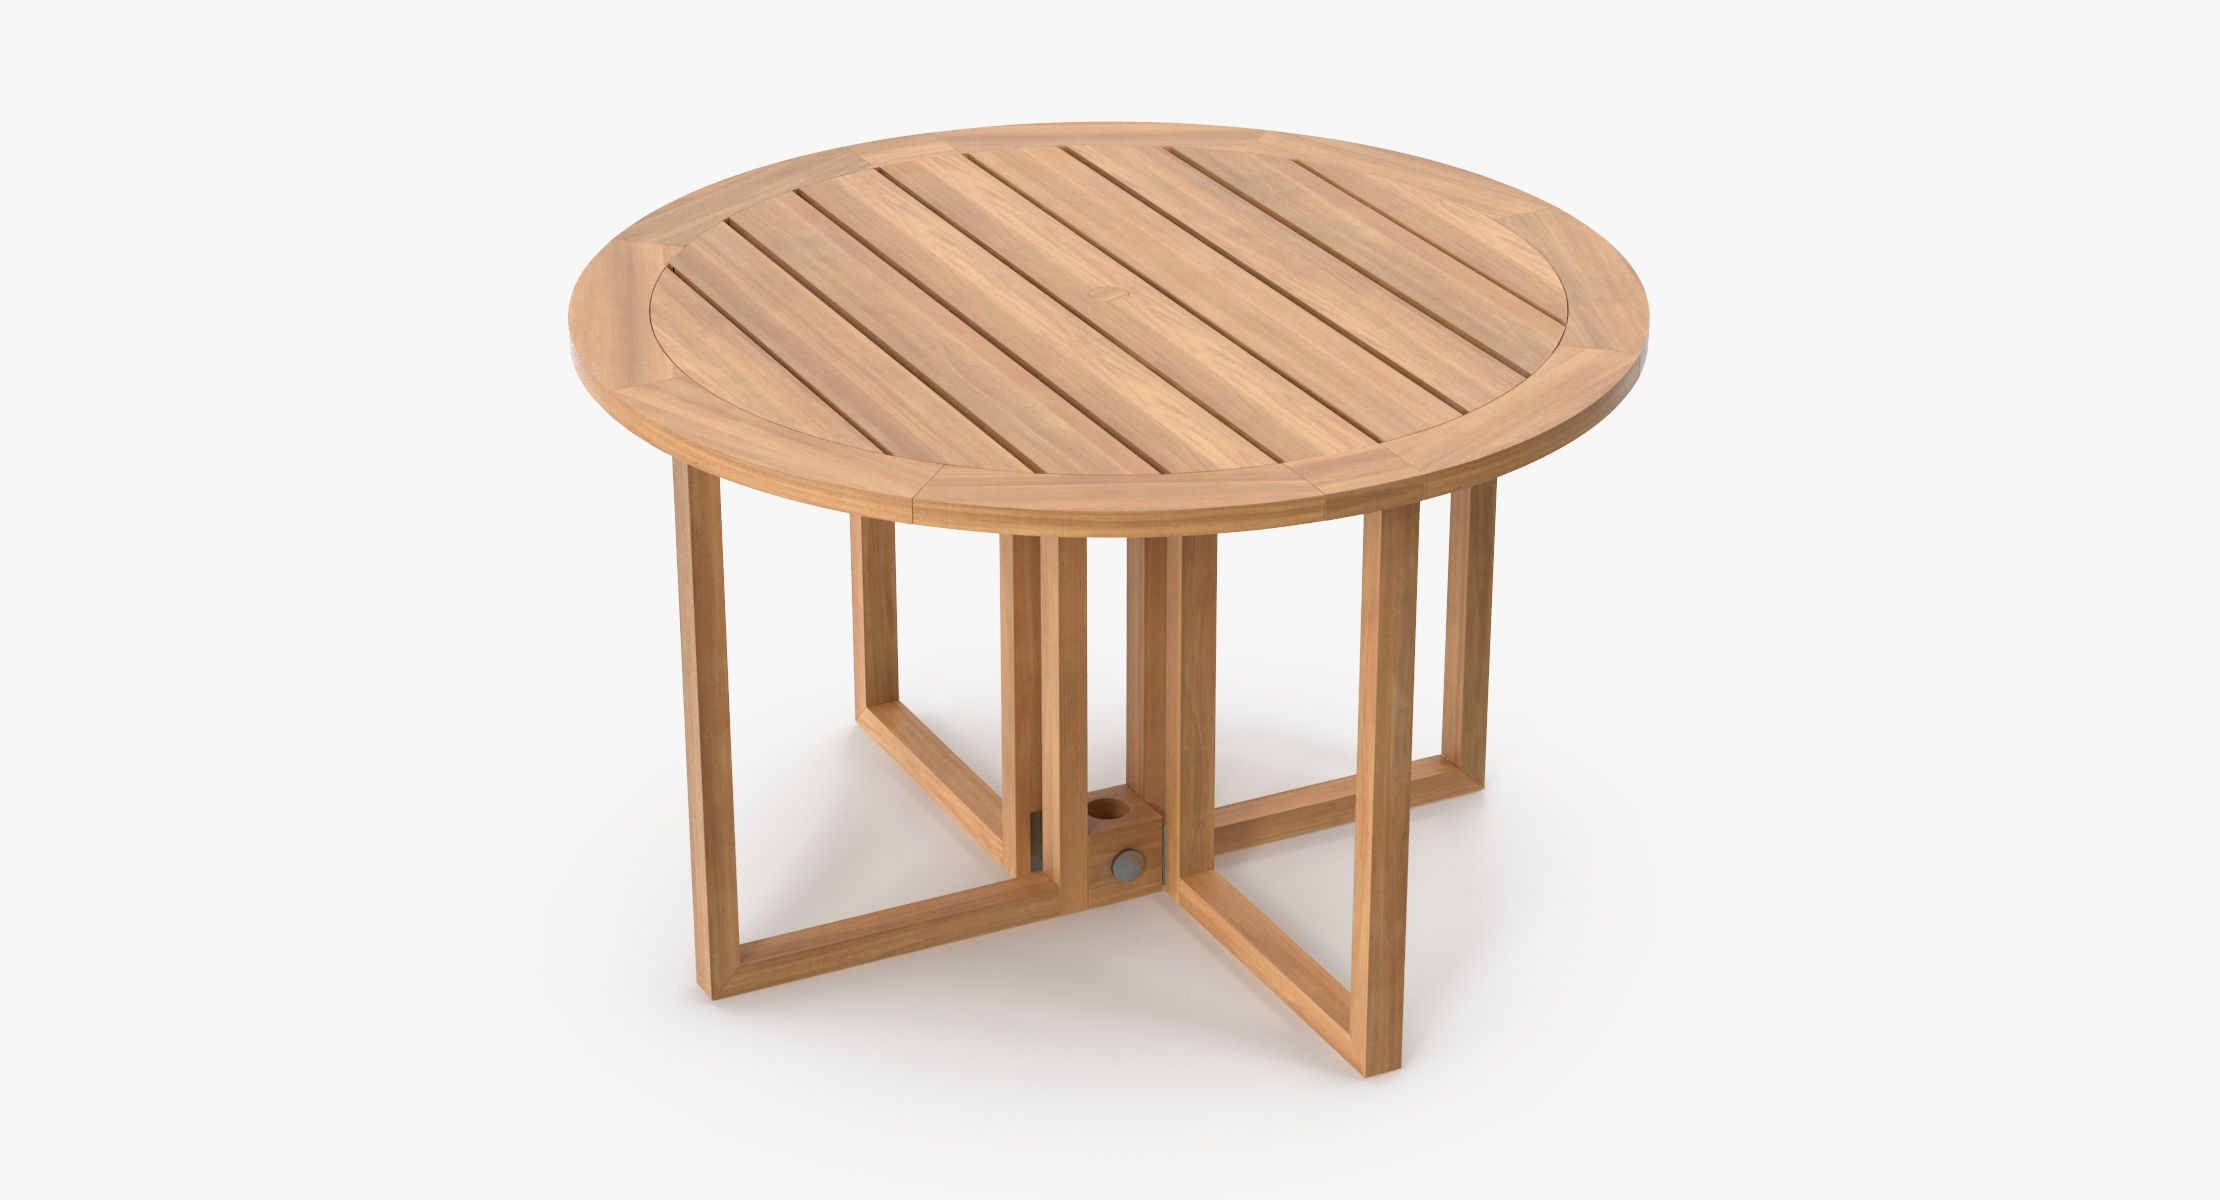 Patio Dining Table Round (seats 6) 01 - reel 1